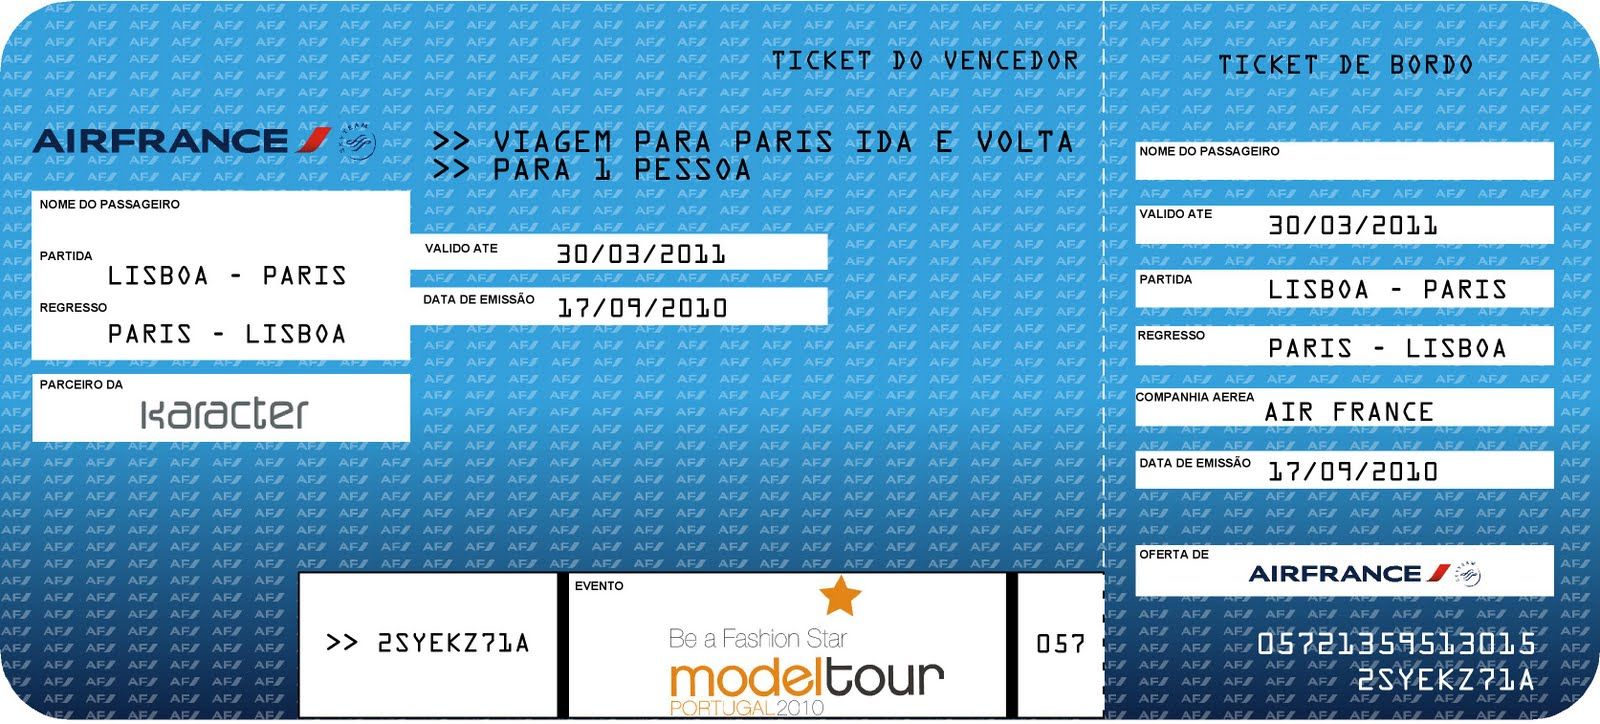 sara pozzetti u0026 39 s portfolio  air france ticket prize for modeltour model of the year contest